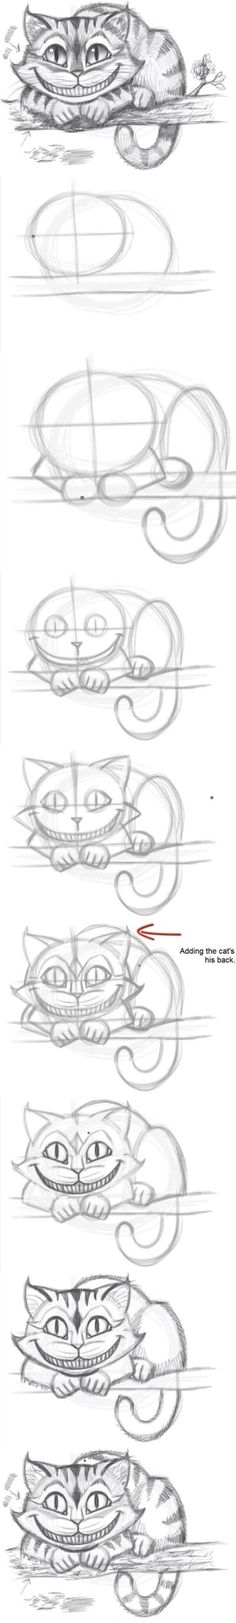 How to draw a cat I used this and it worked!